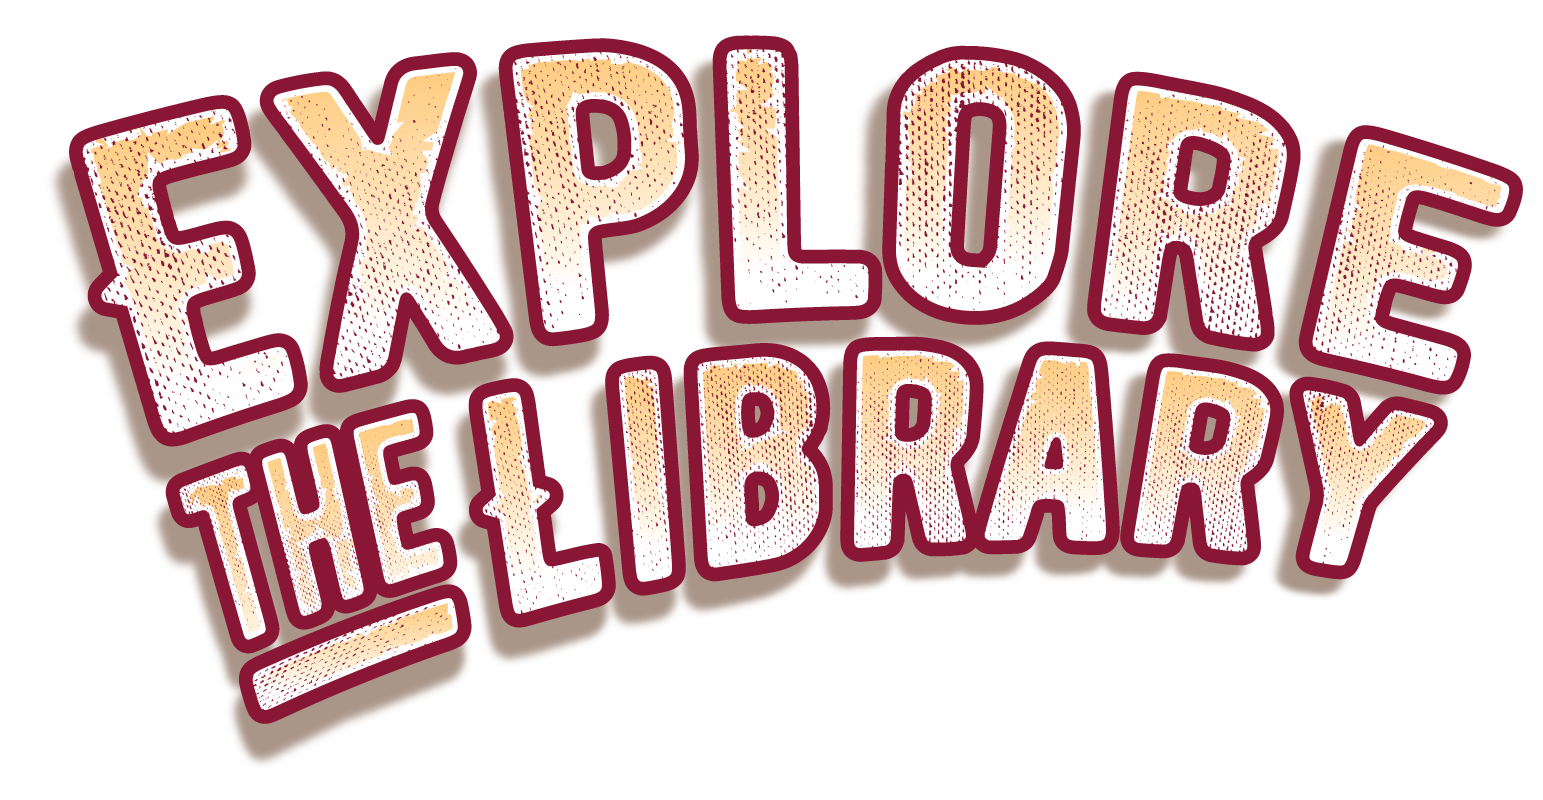 Explore the Library logo